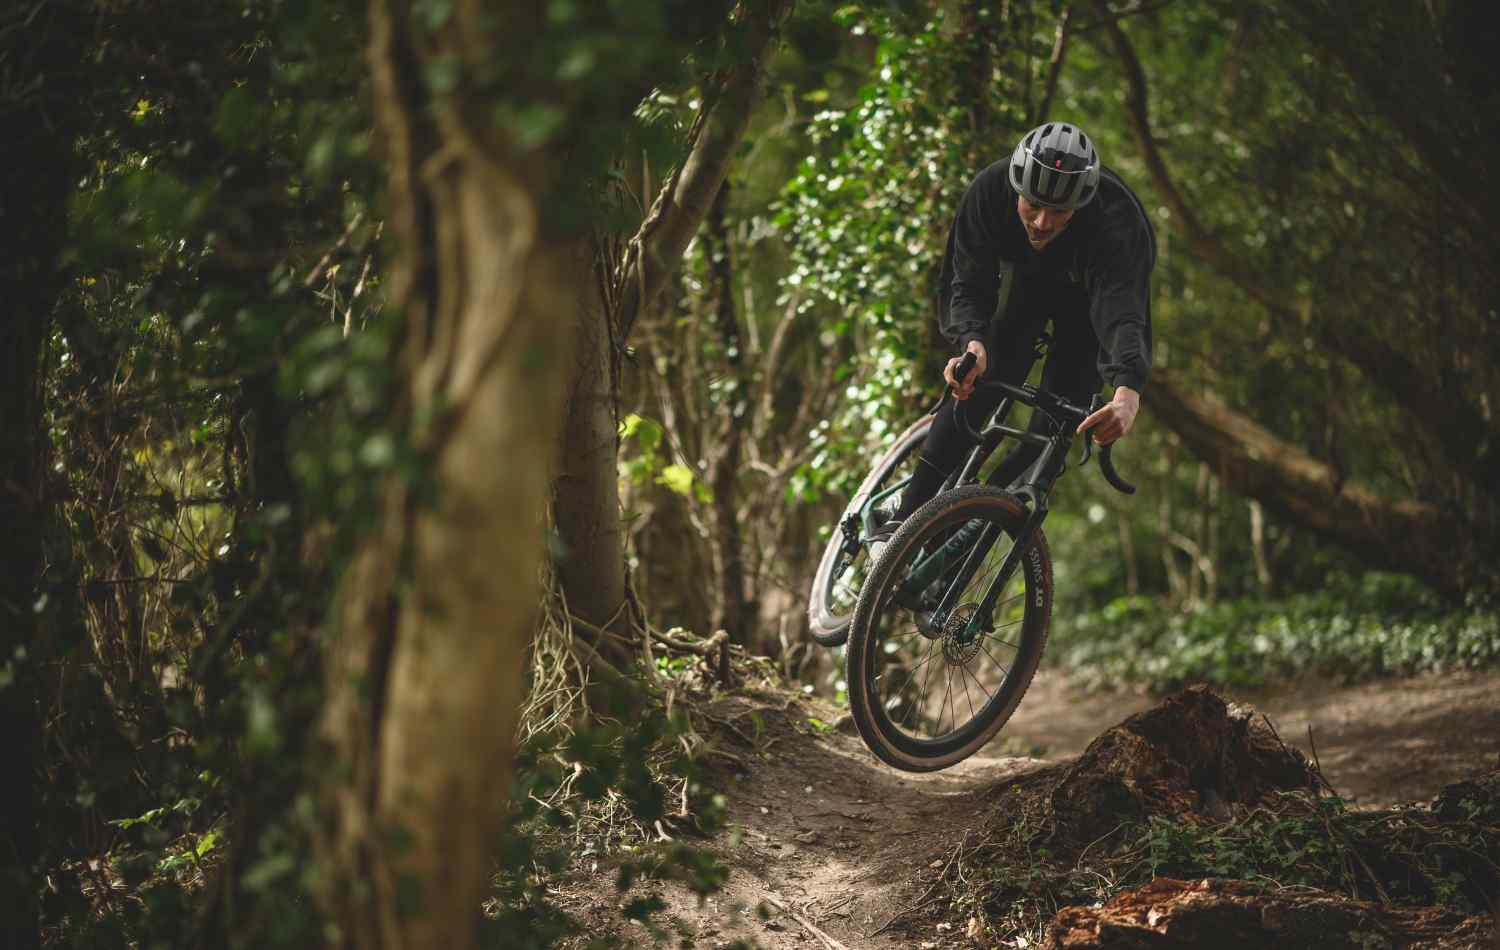 Liam Yates getting playful on a Canyon Grizl on a trail